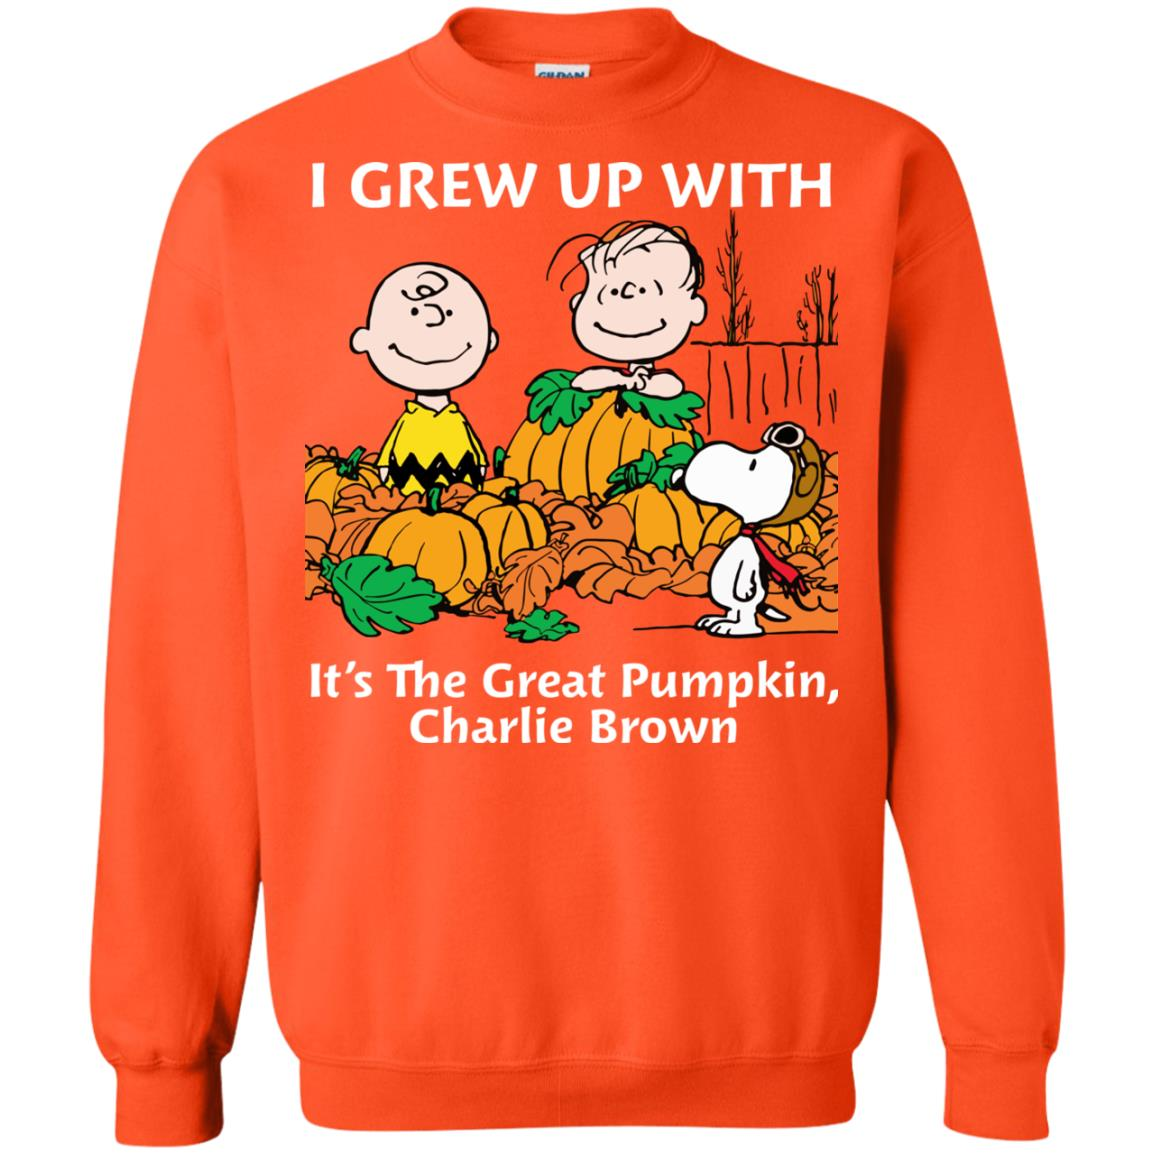 image 273 - Charlie Brown: I grew up with It's The Great Pumpkin shirt, sweater